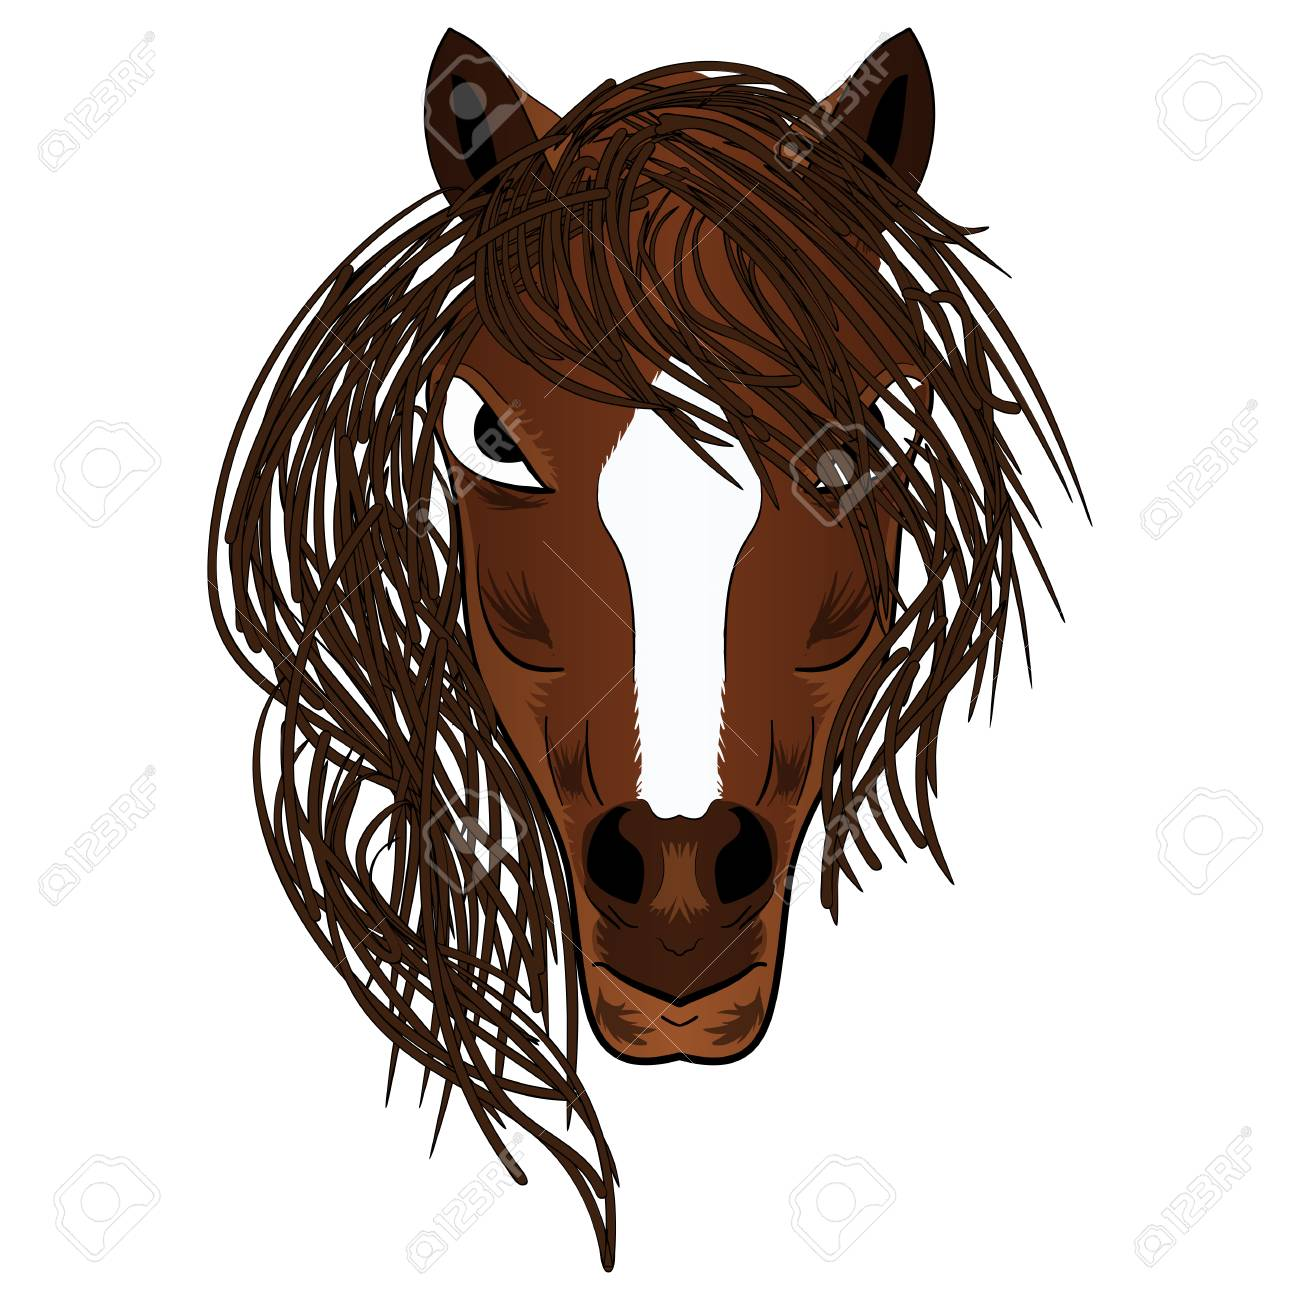 EPS Illustration - Profile of horse with flowing mane, sketch style. Vector  Clipart gg85137525 - GoGraph